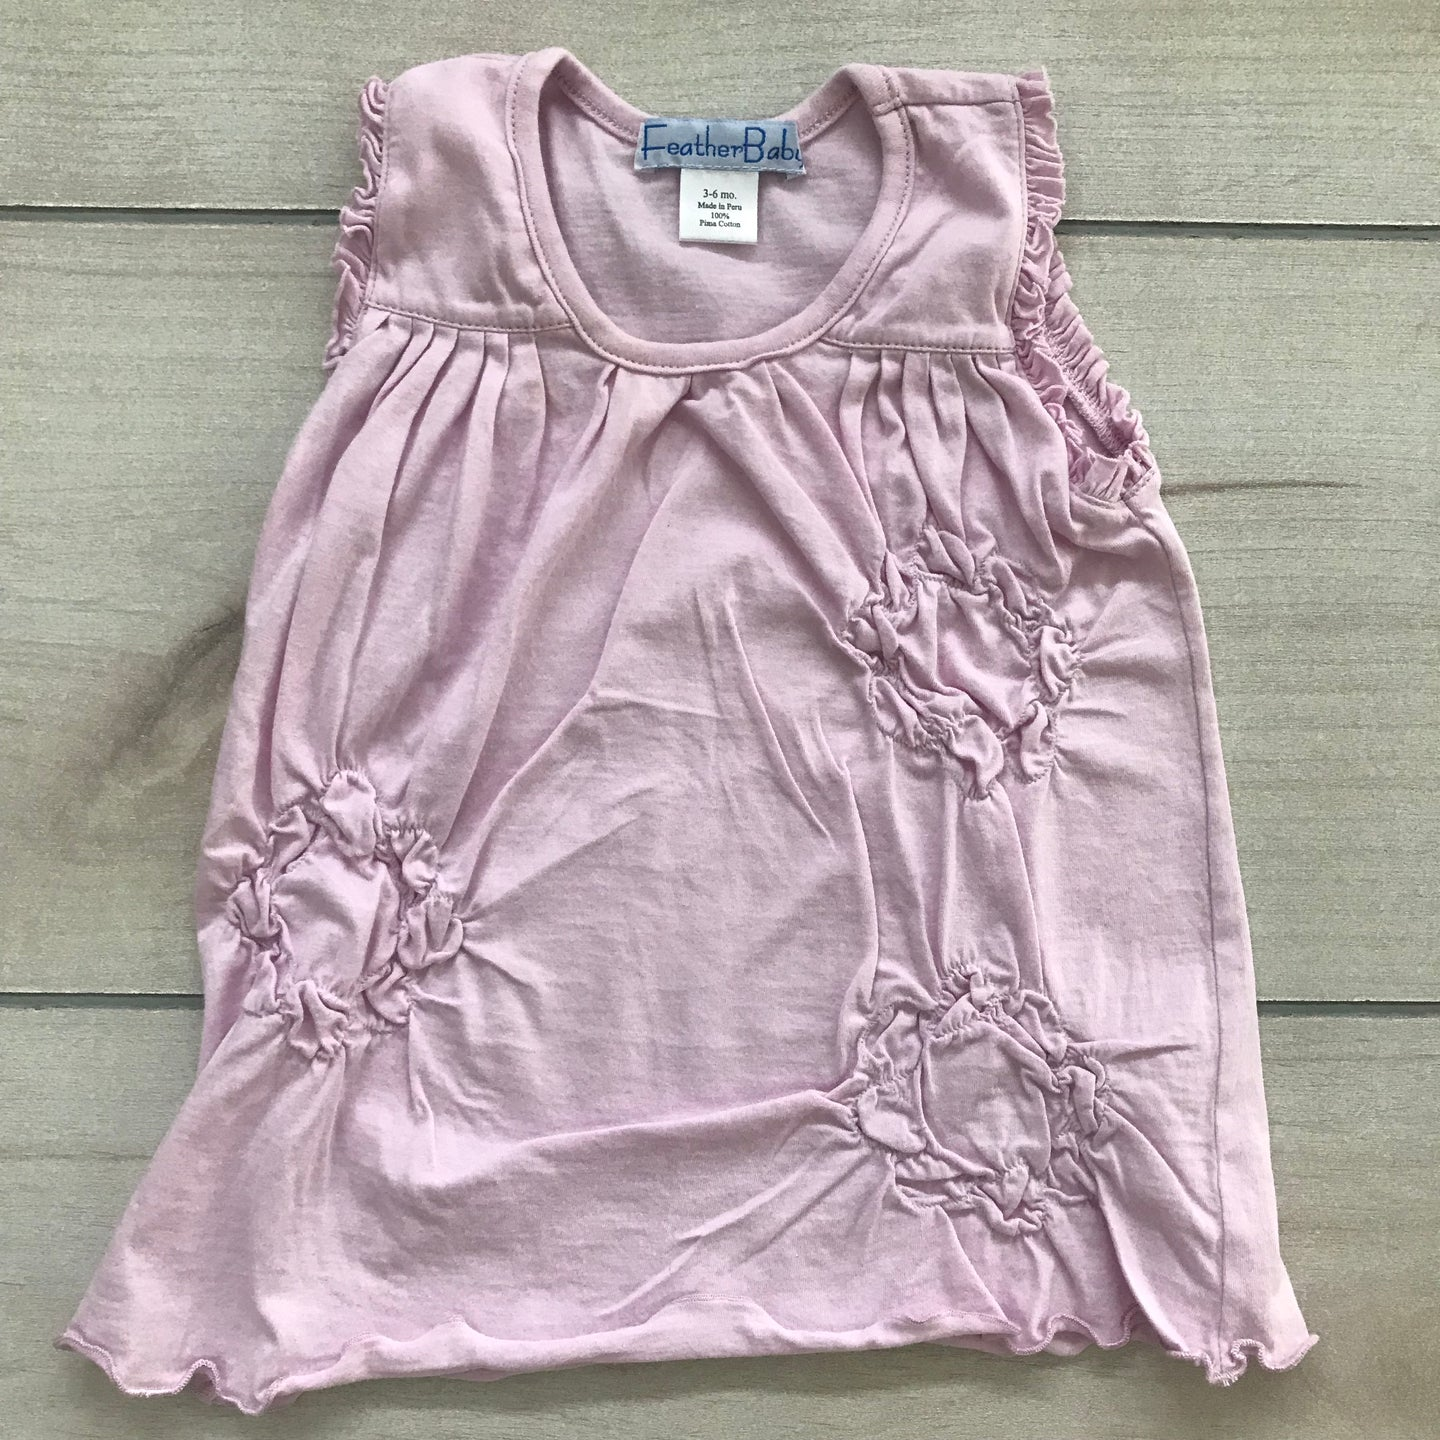 Feather Baby Pink Dress Size 3-6 months